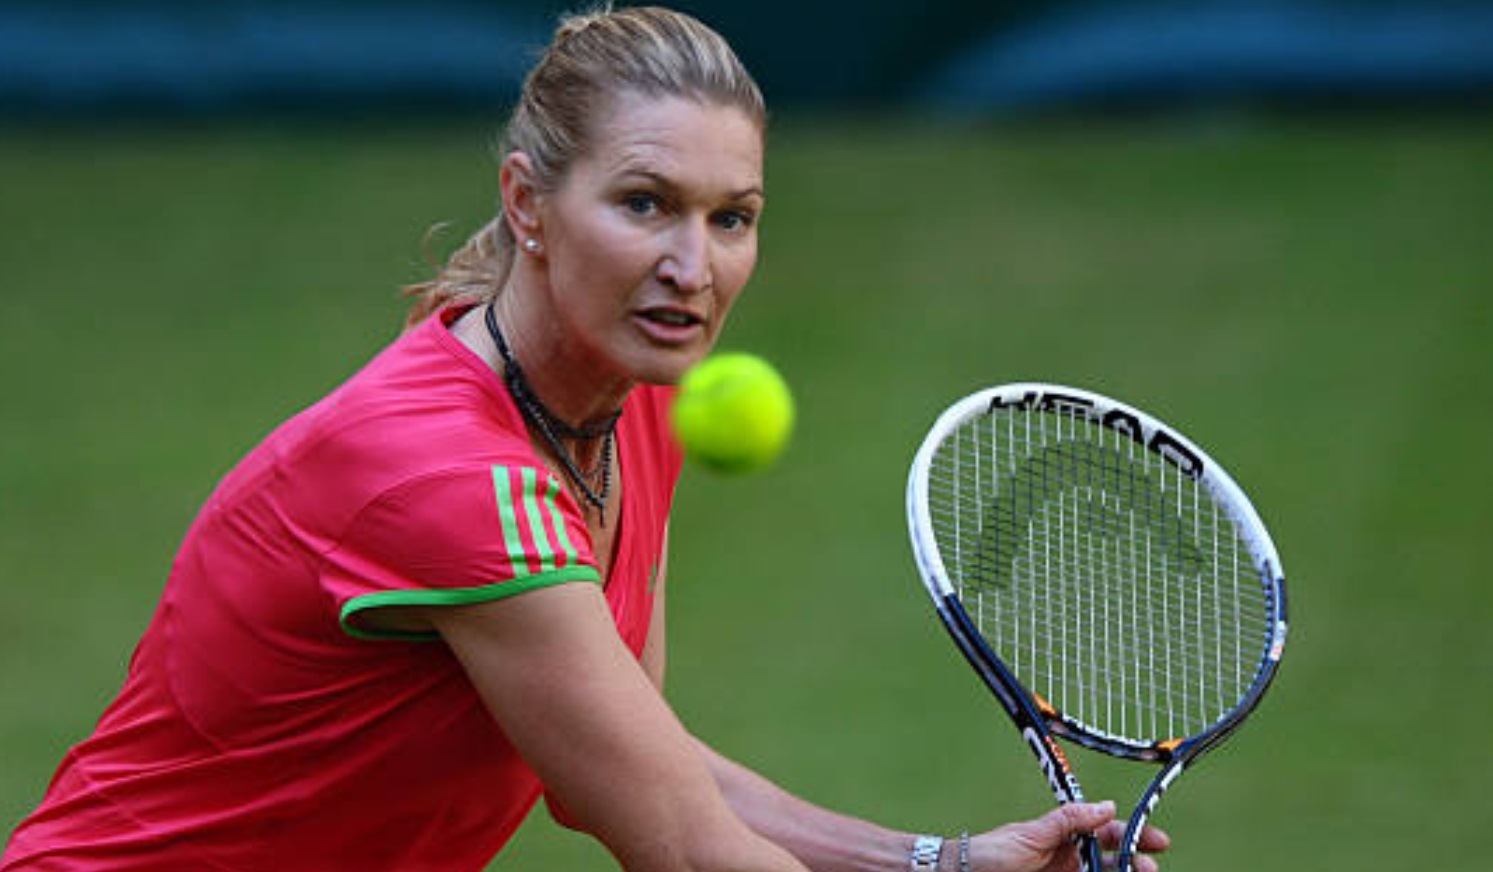 One of the best performers in tennis Steffi Graf